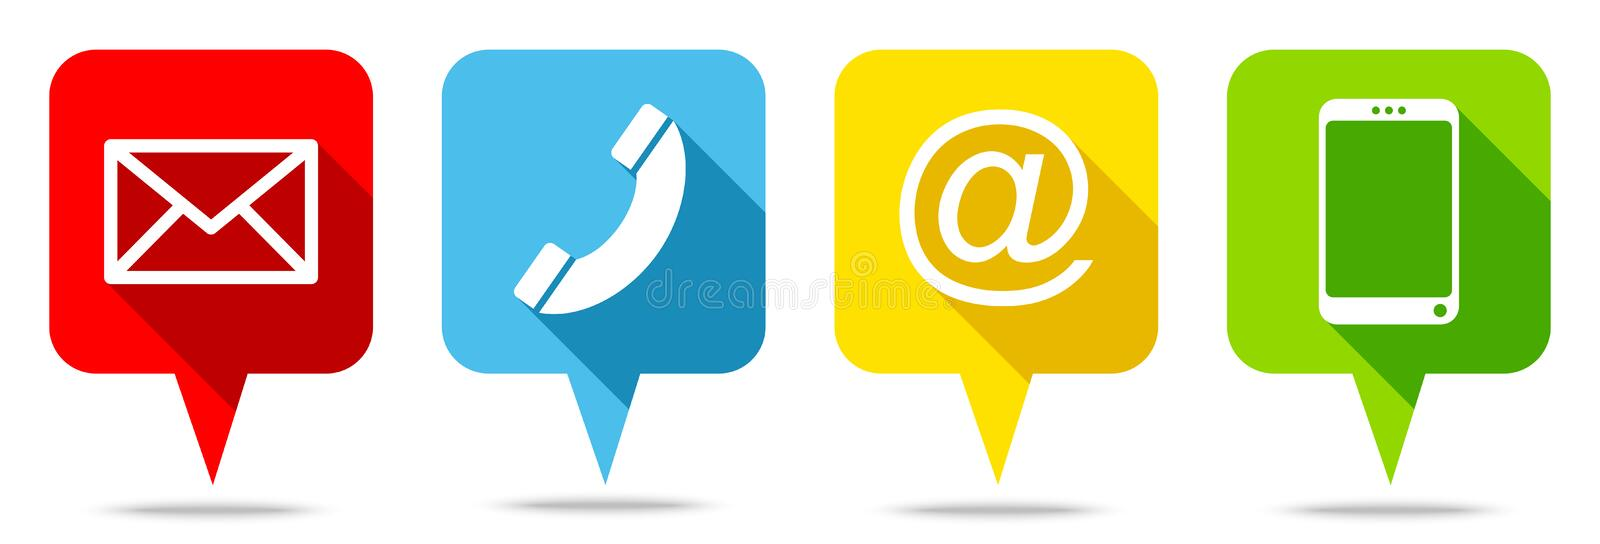 Set Of Four Colorful Speech Bubbles Contact stock illustration